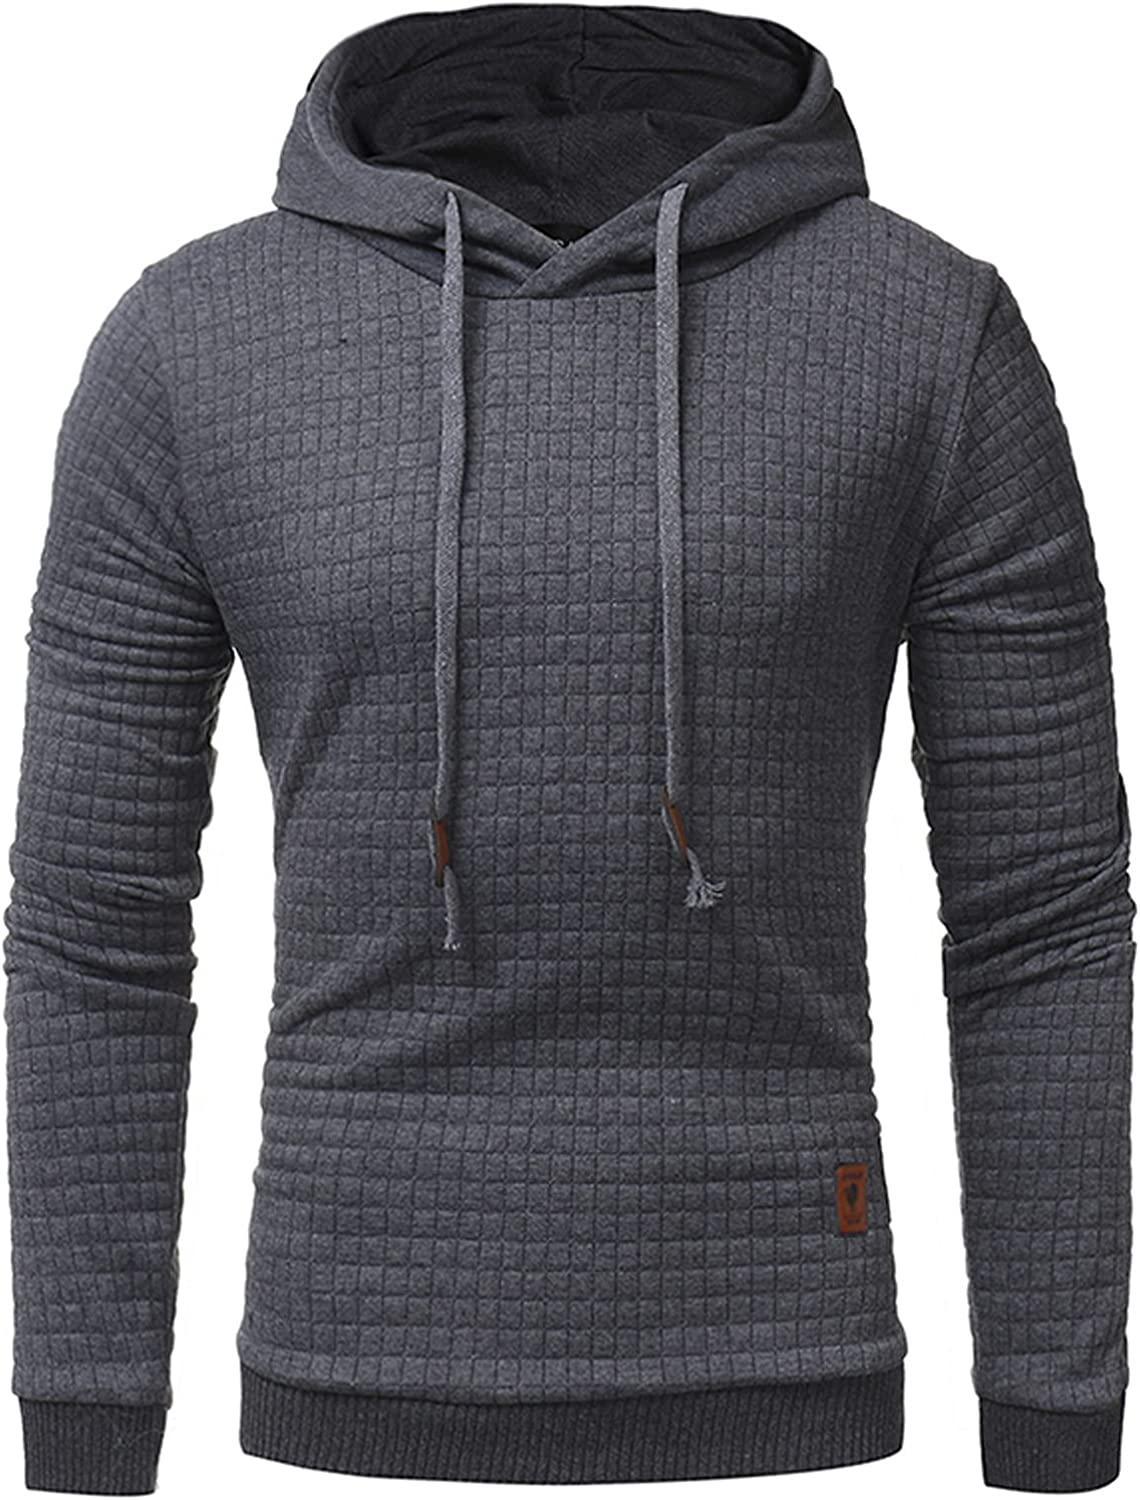 Huangse Casual Long Sleeve Hoodies Pullover for Men Drawstring Hooded T-Shirts Lightweight Workout Hoodie Tops